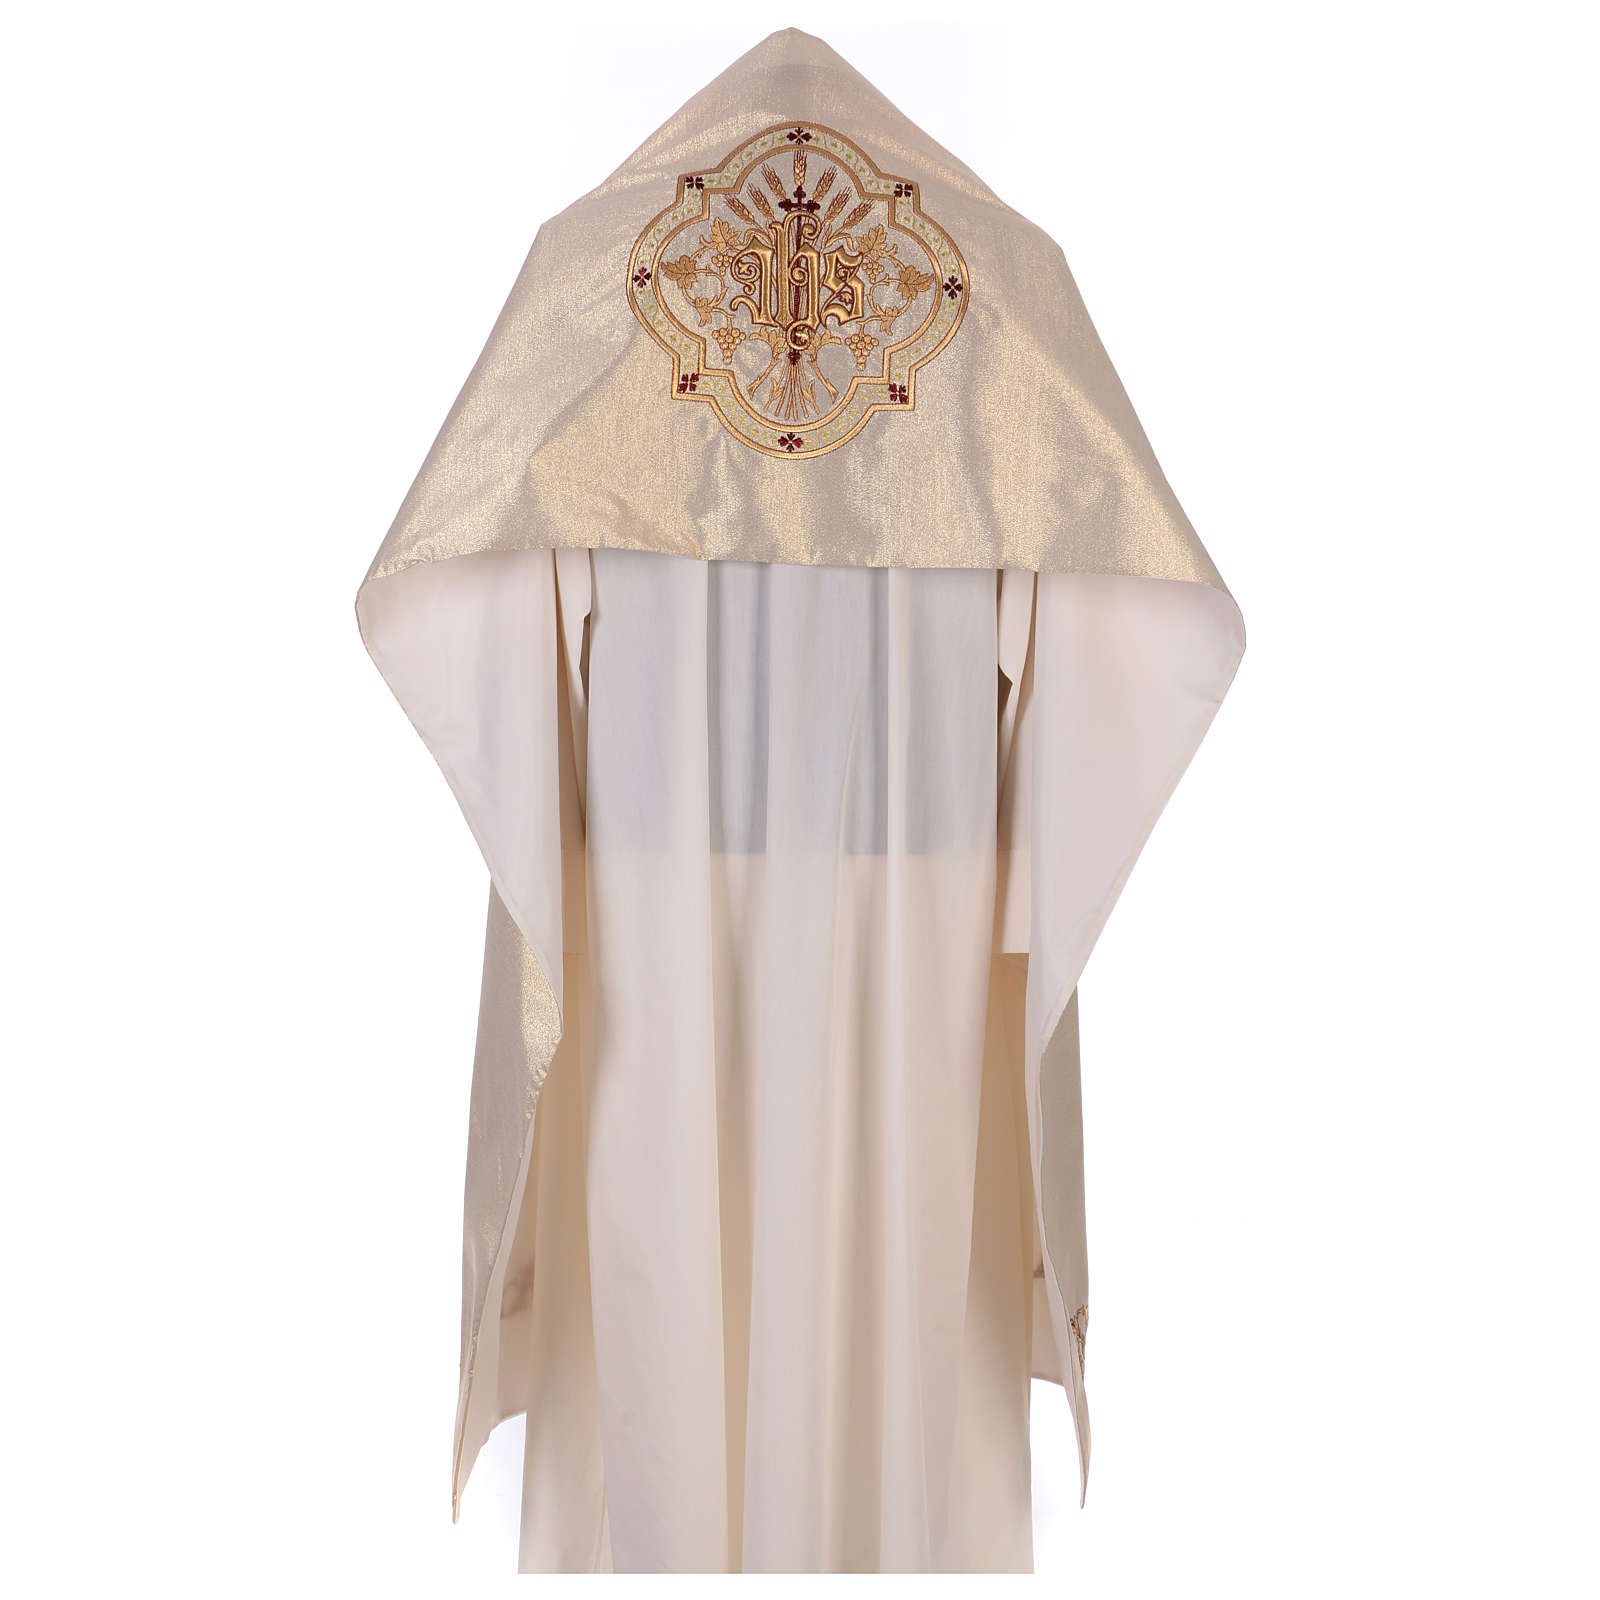 Humeral veil ecru IHS embroidery 100% polyester 4